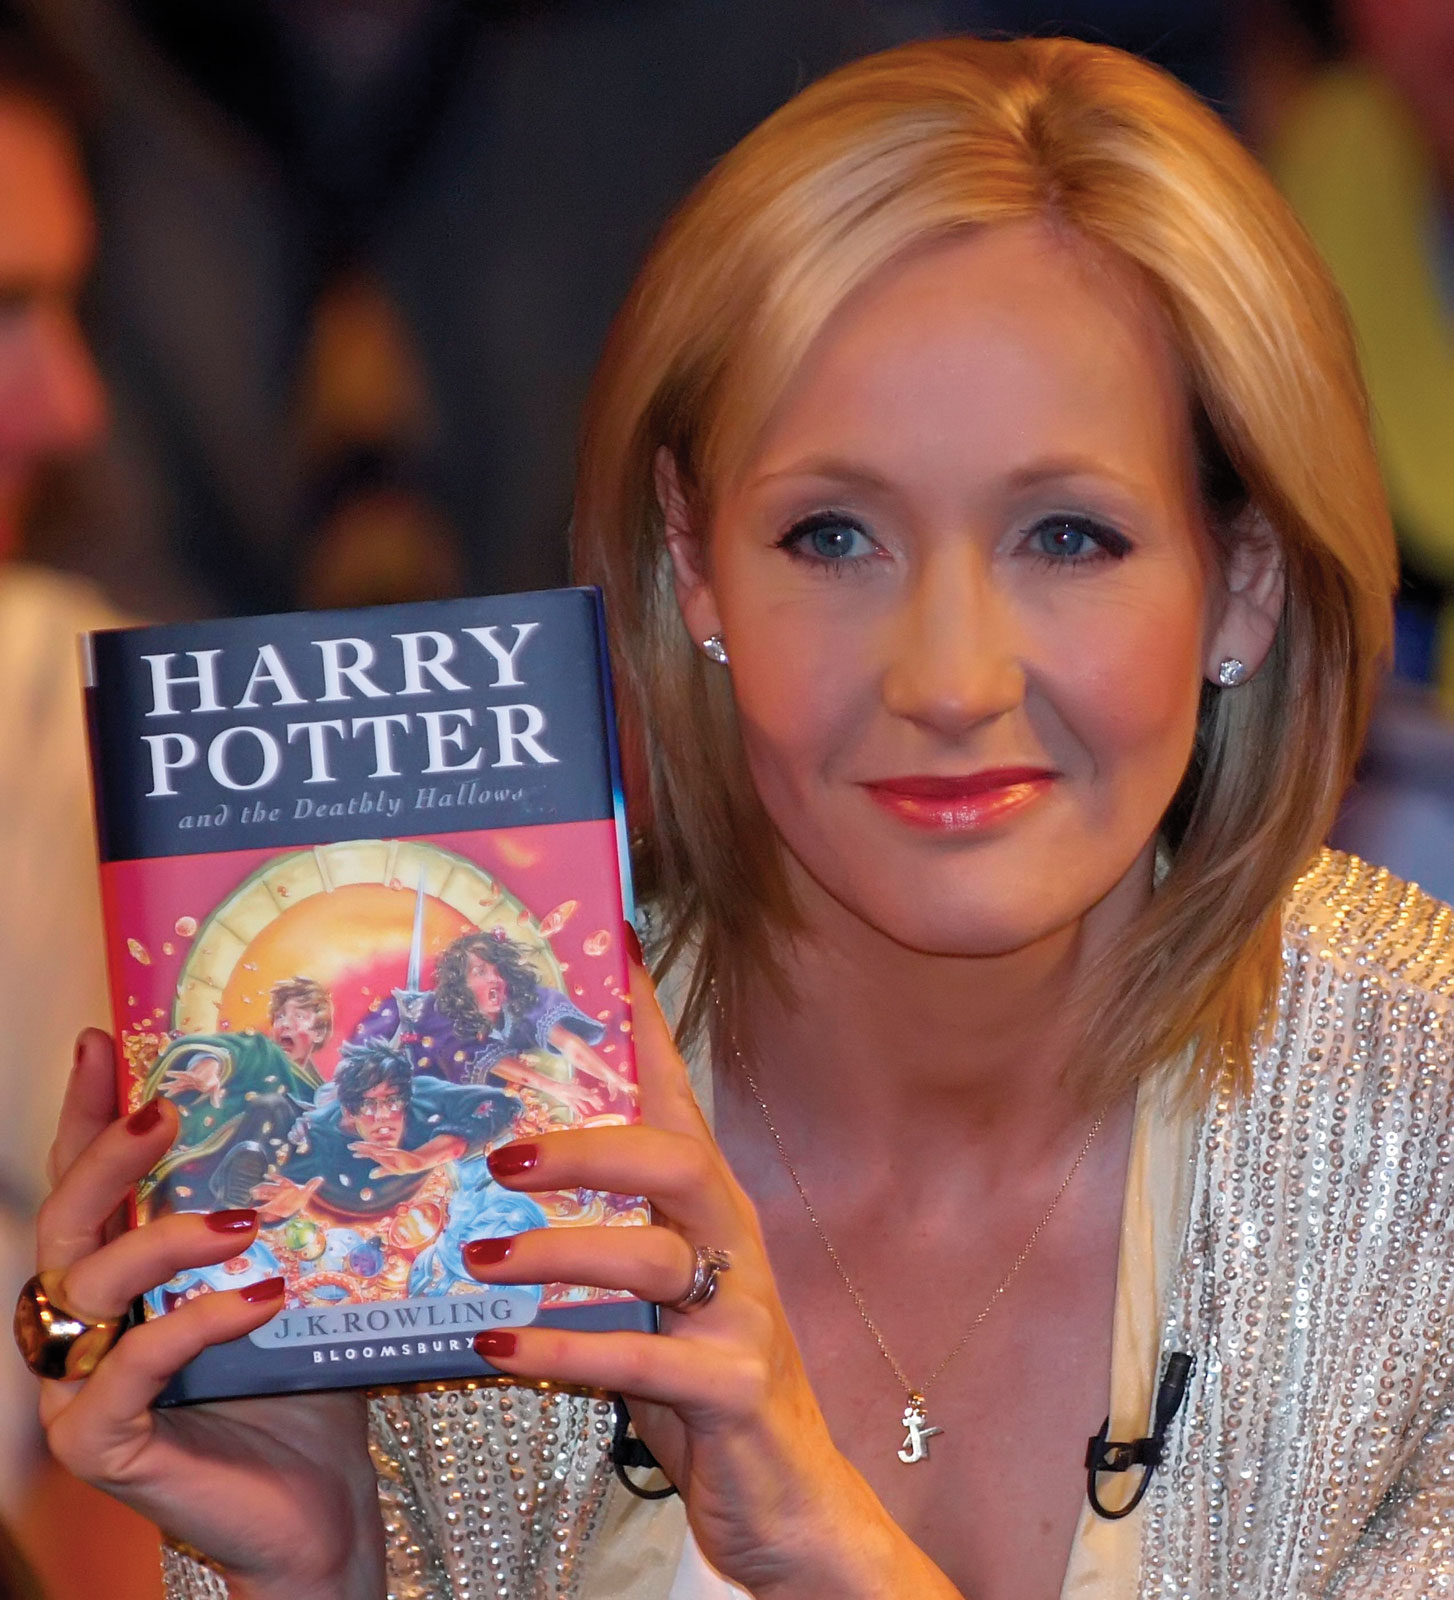 jk-rowling-author-photo-harry-potter-and-the-deathly-hallows-book-cover-photo